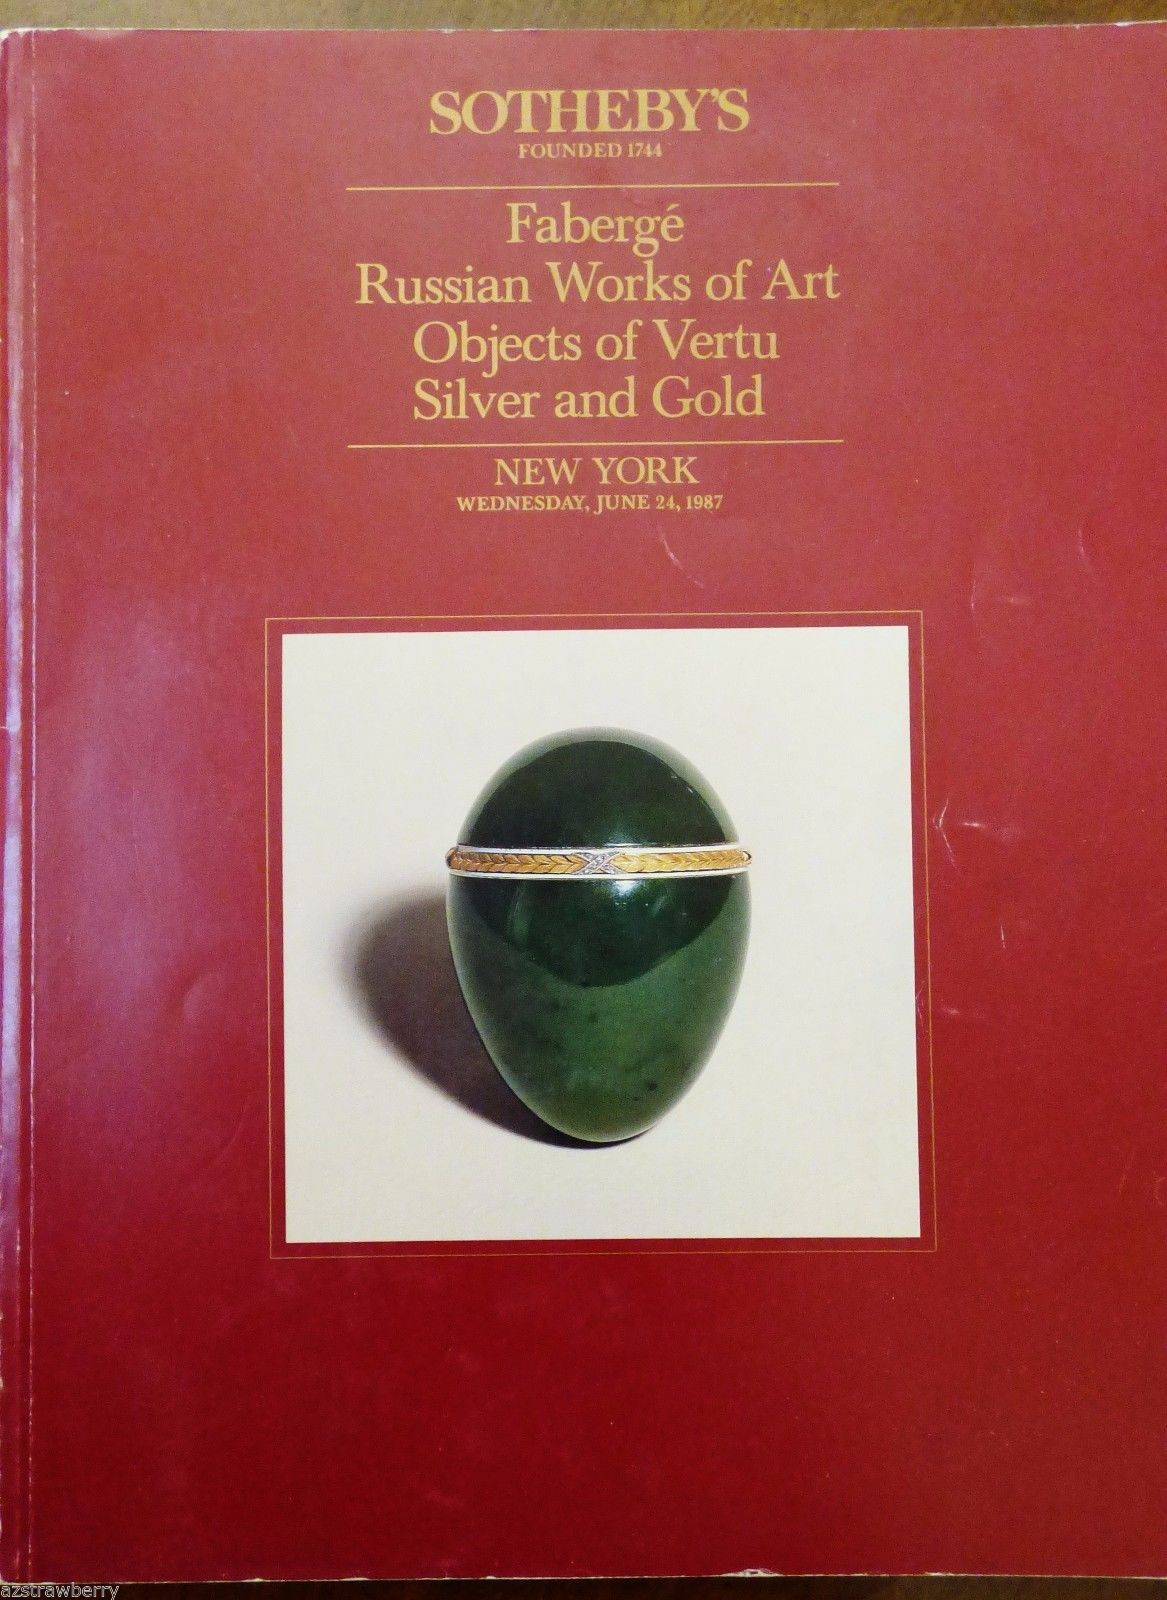 1987 Sotheby's Catalog Faberge Russian Works of Art Objects of Vertu Silver Gold